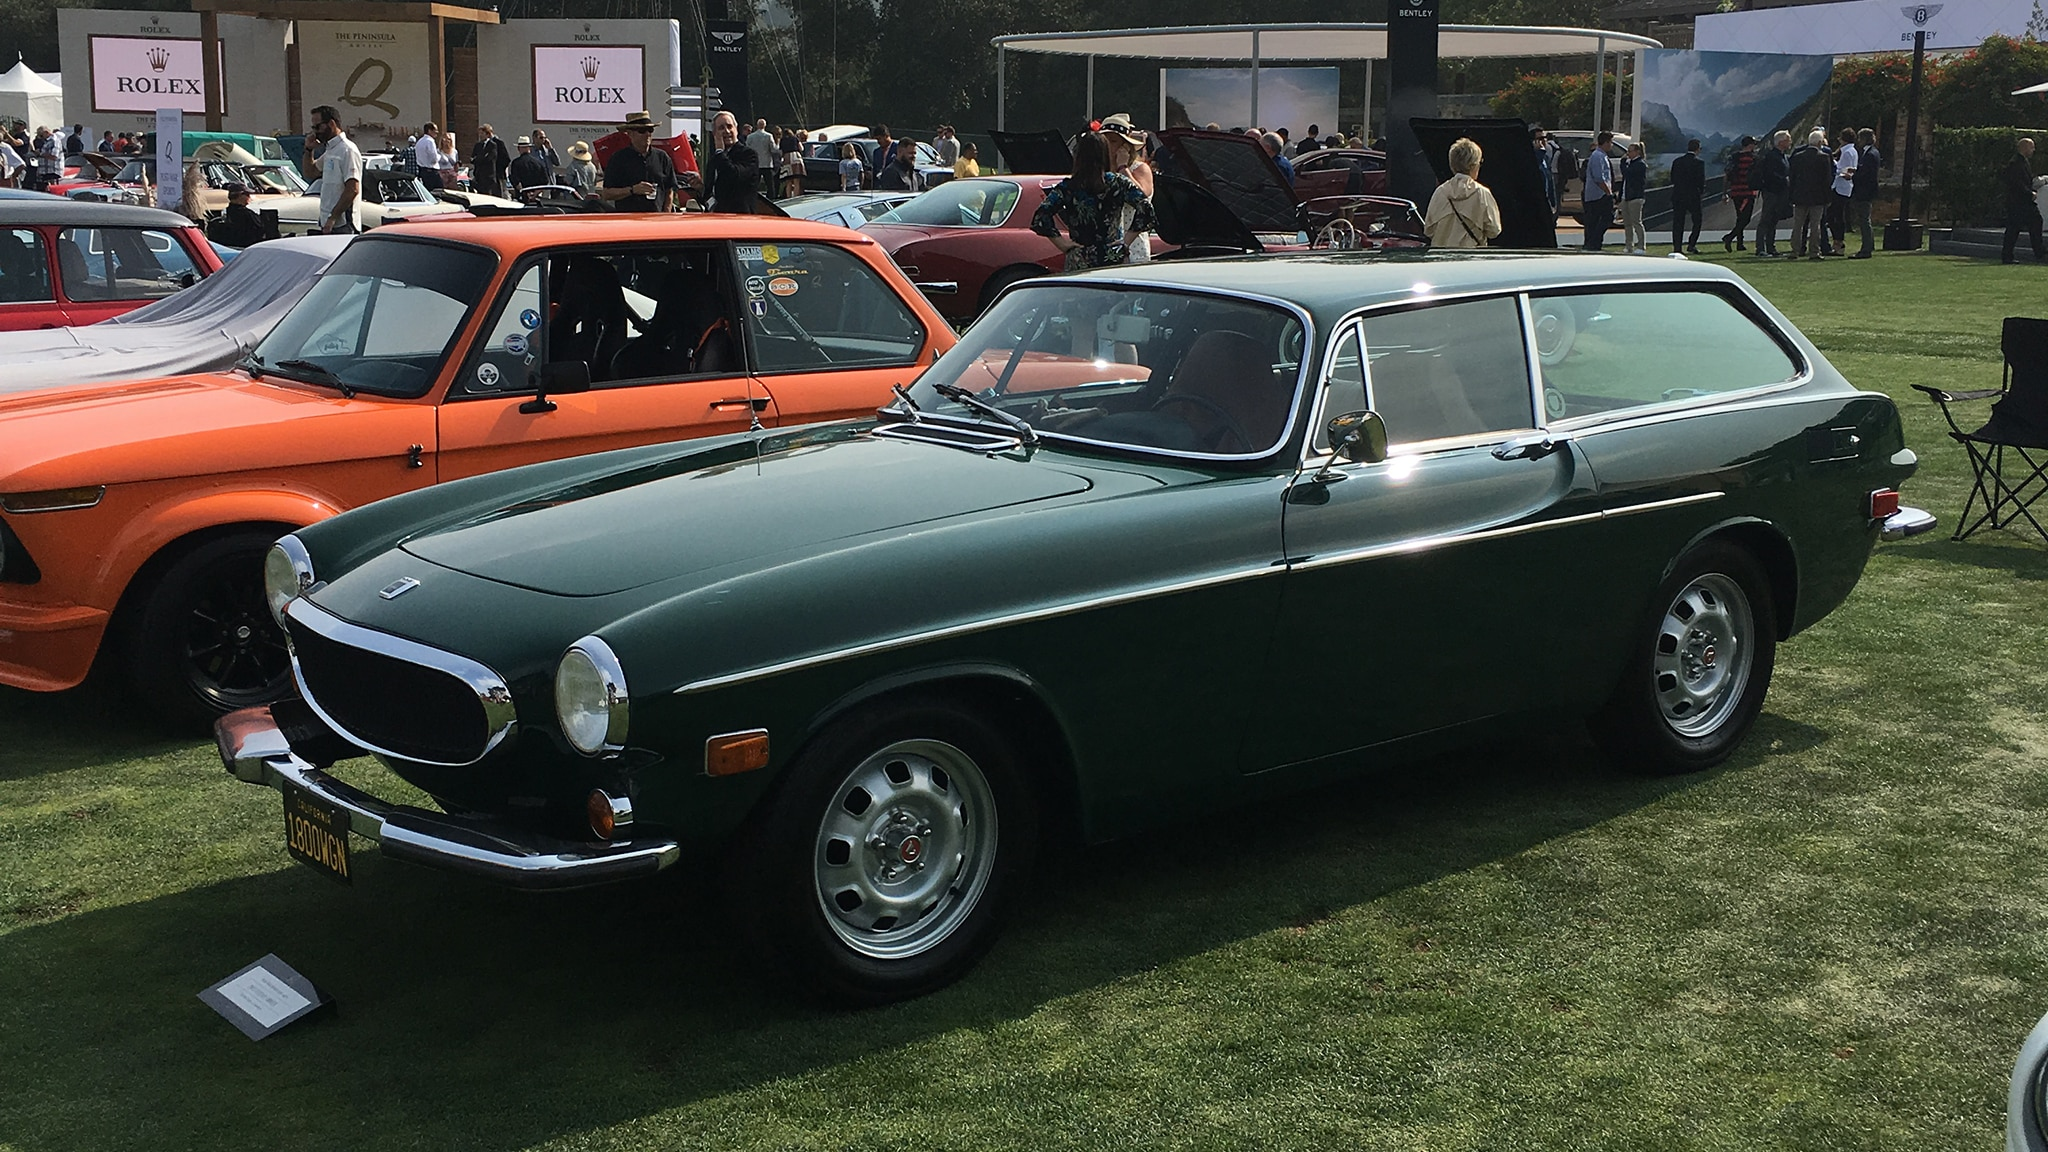 The Best Cars Of The Quail Automobile Magazine - Quail car show tickets price